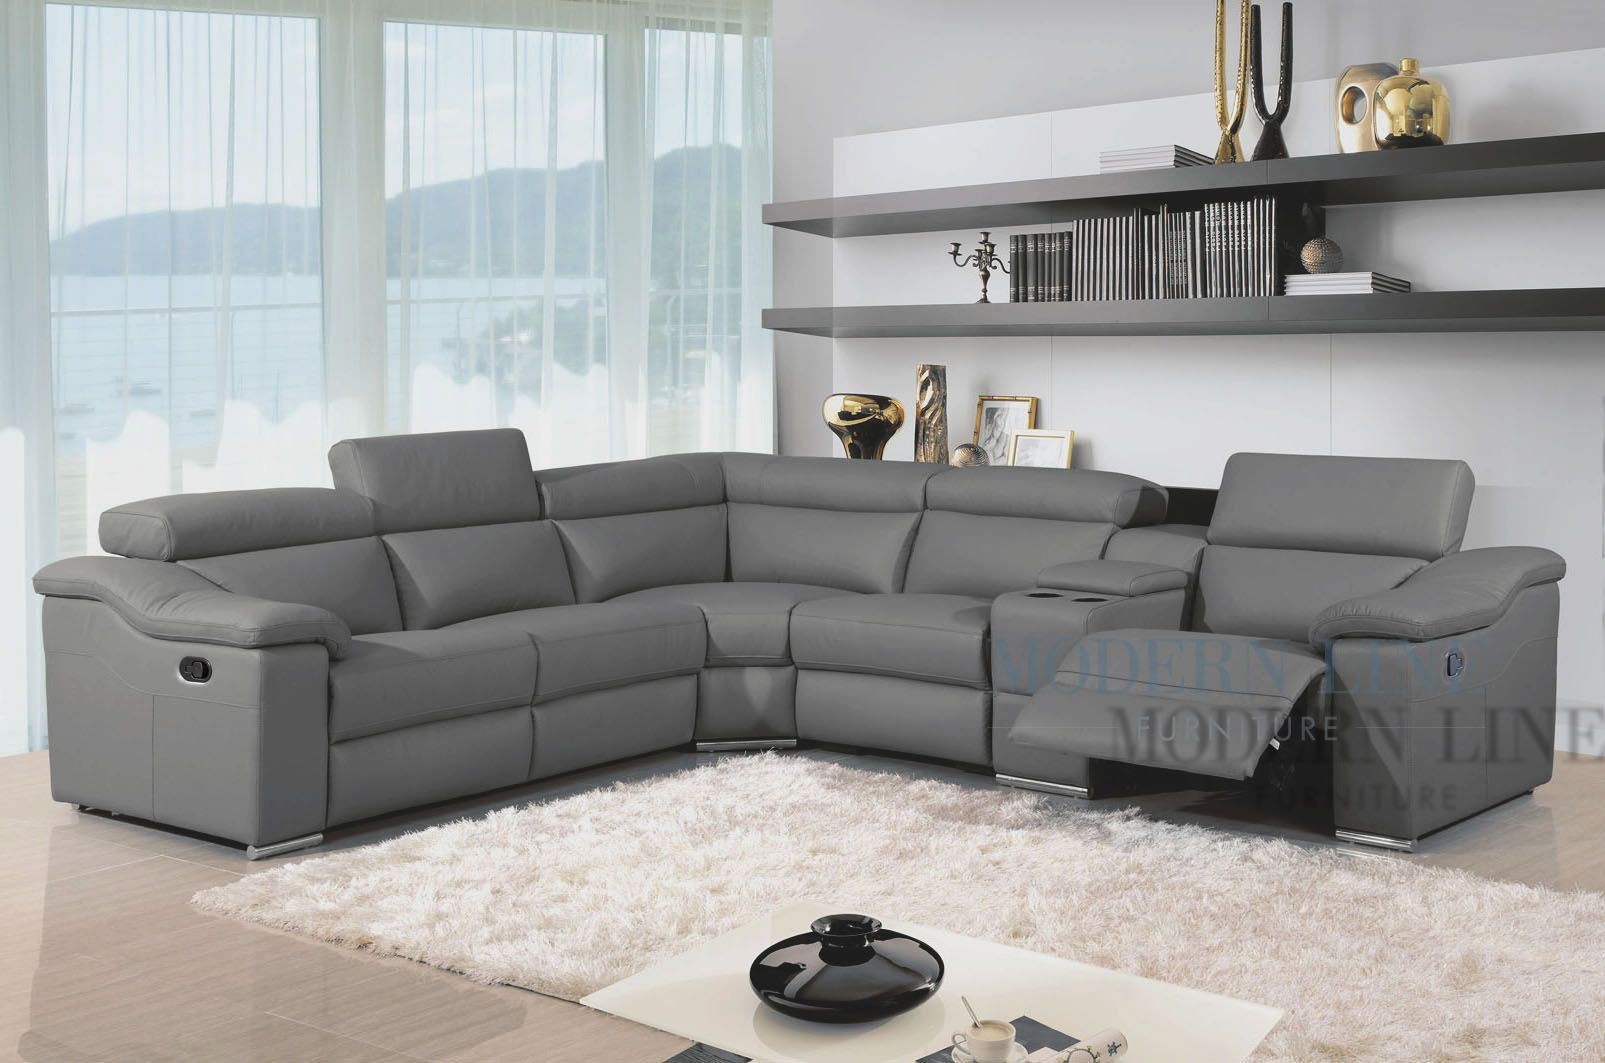 I also changed the location of the electric recliner from the outside of the couch to the inside making it easier to access. The couch is still an electric ... : leather sectional power recliner - Sectionals, Sofas & Couches